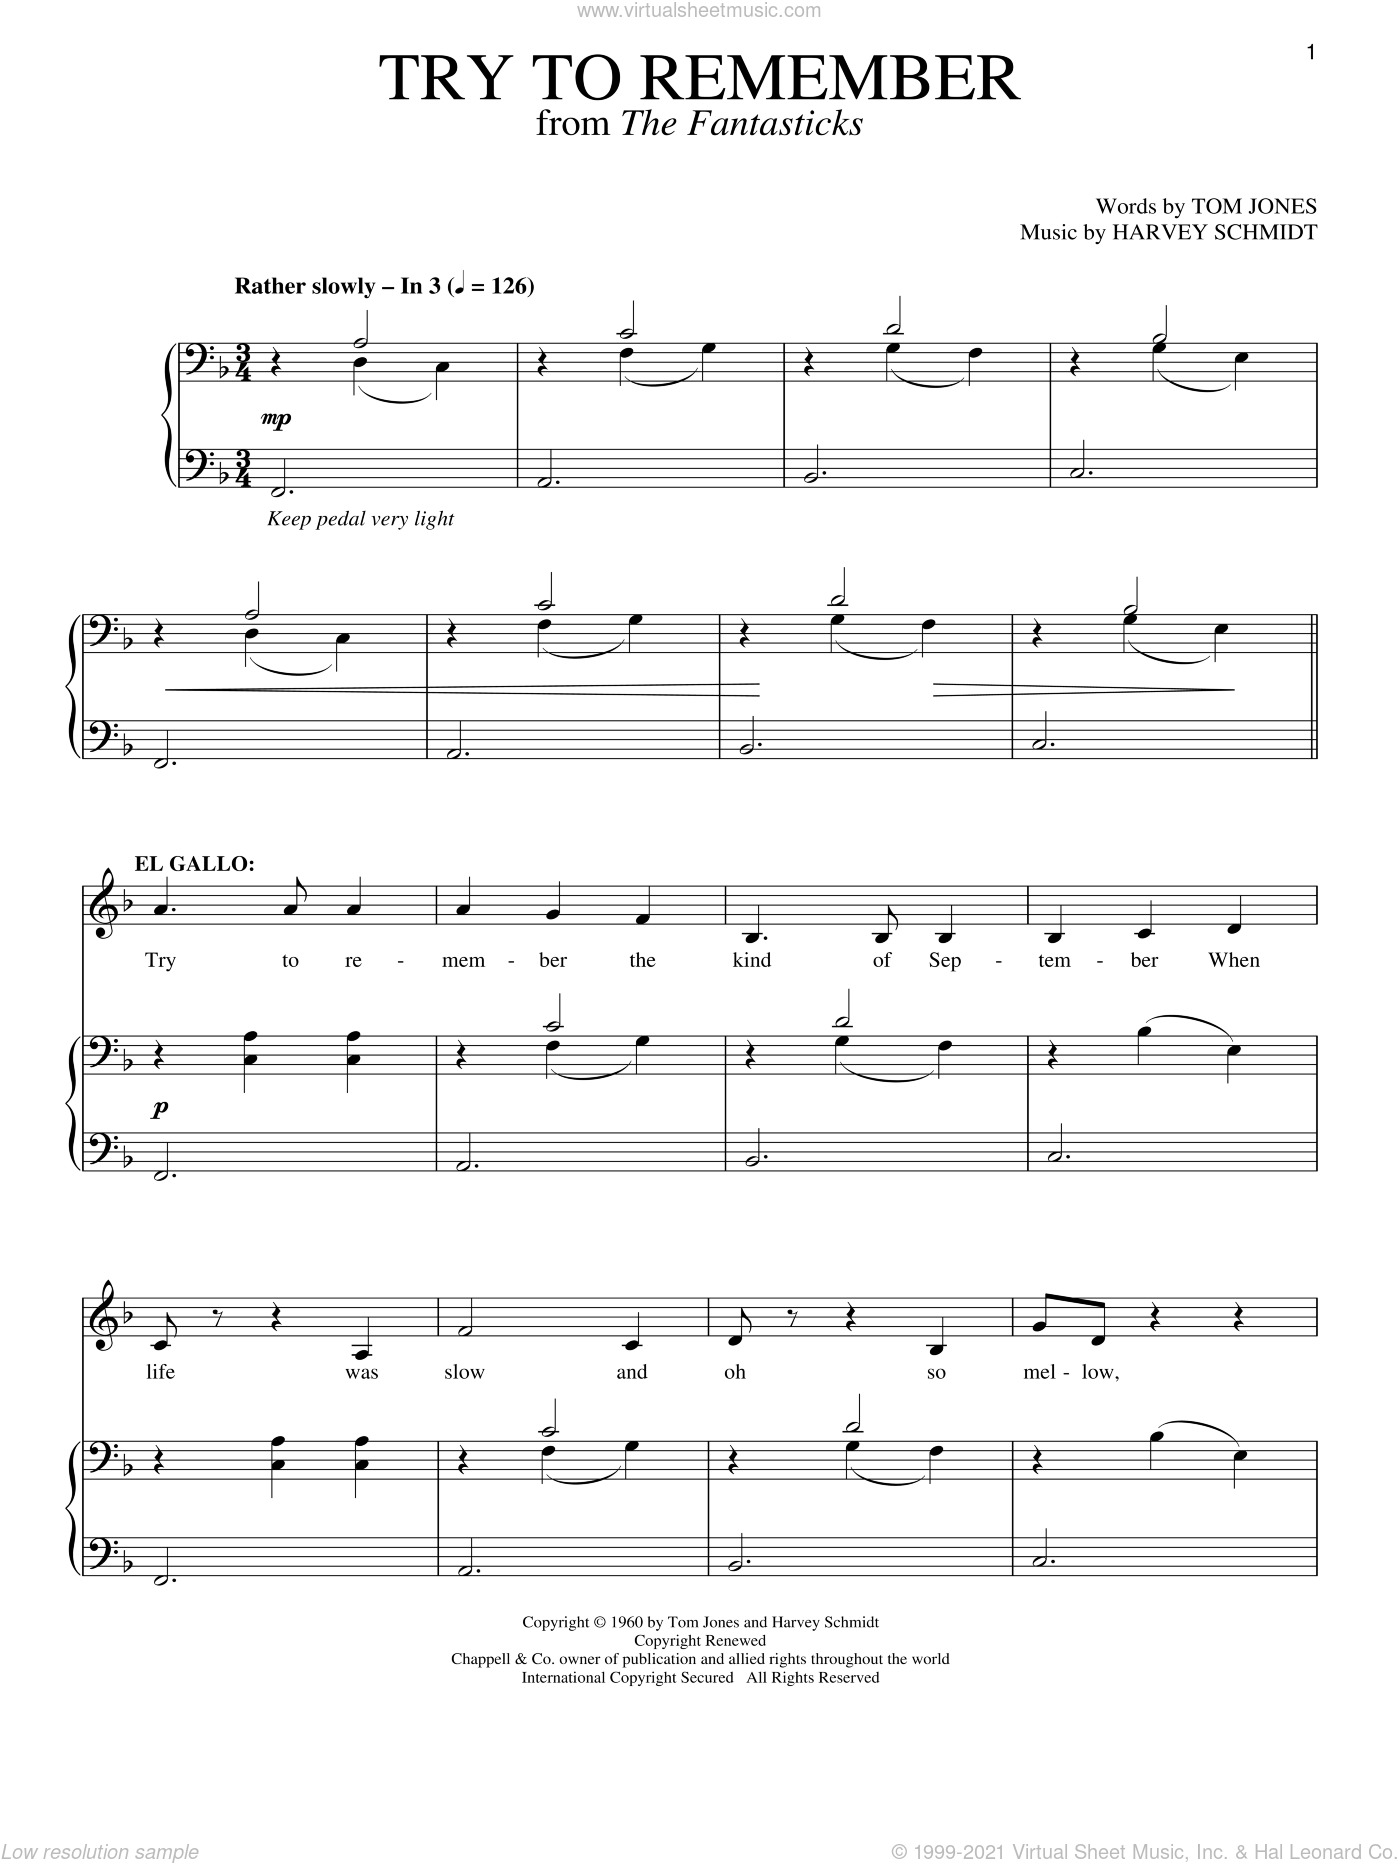 Try To Remember sheet music for voice and piano by Harvey Schmidt, The Fantasticks (Musical) and Tom Jones, intermediate skill level